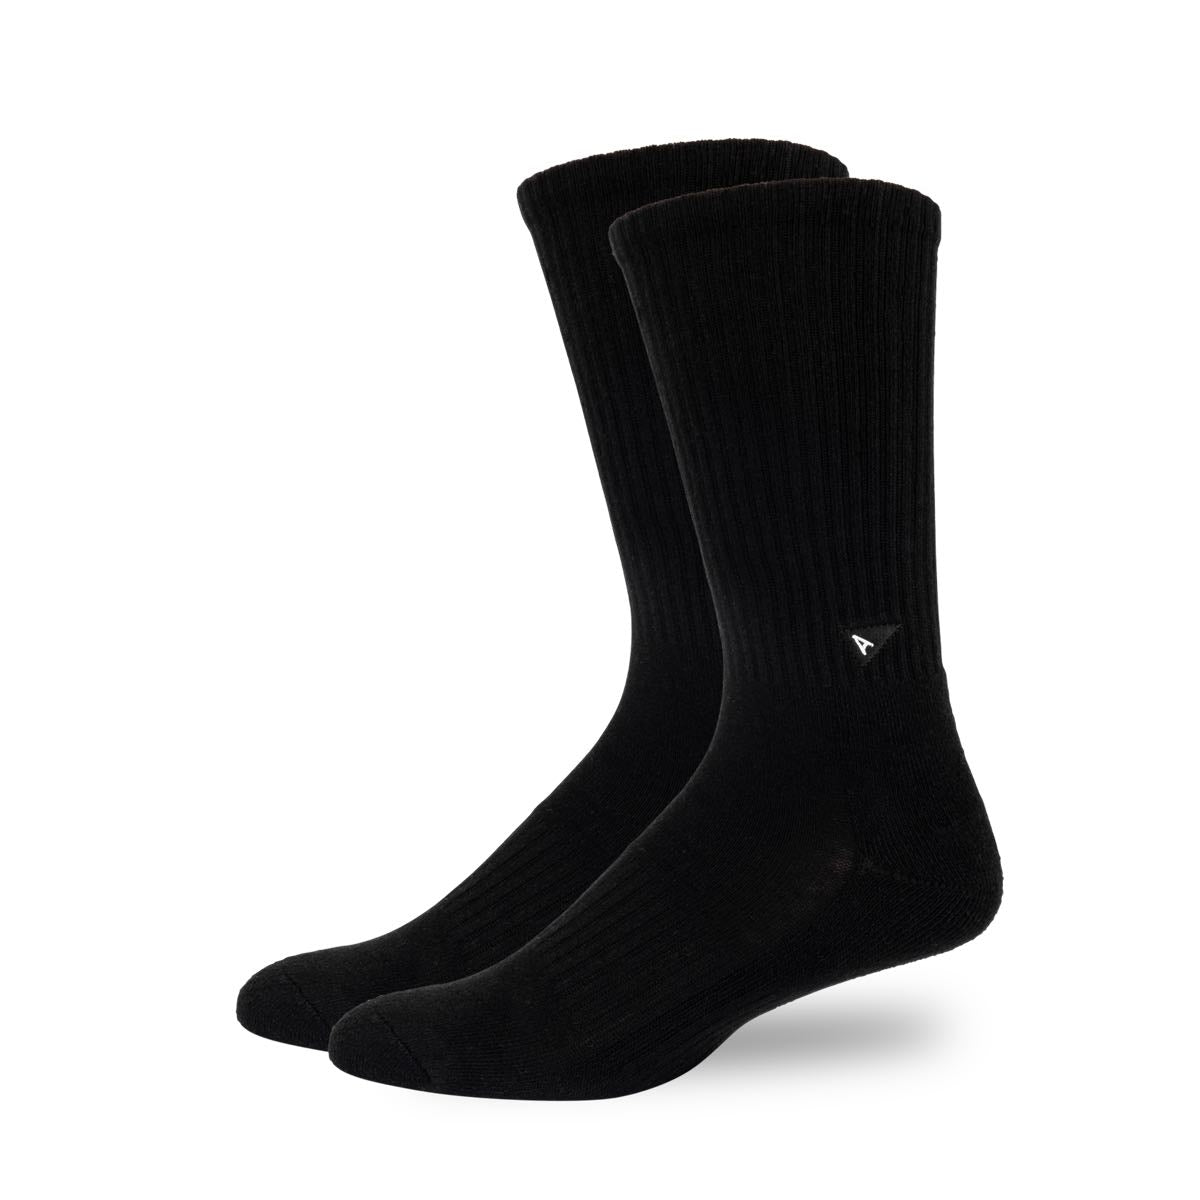 Arvin Goods Long Crew Socks - Black image